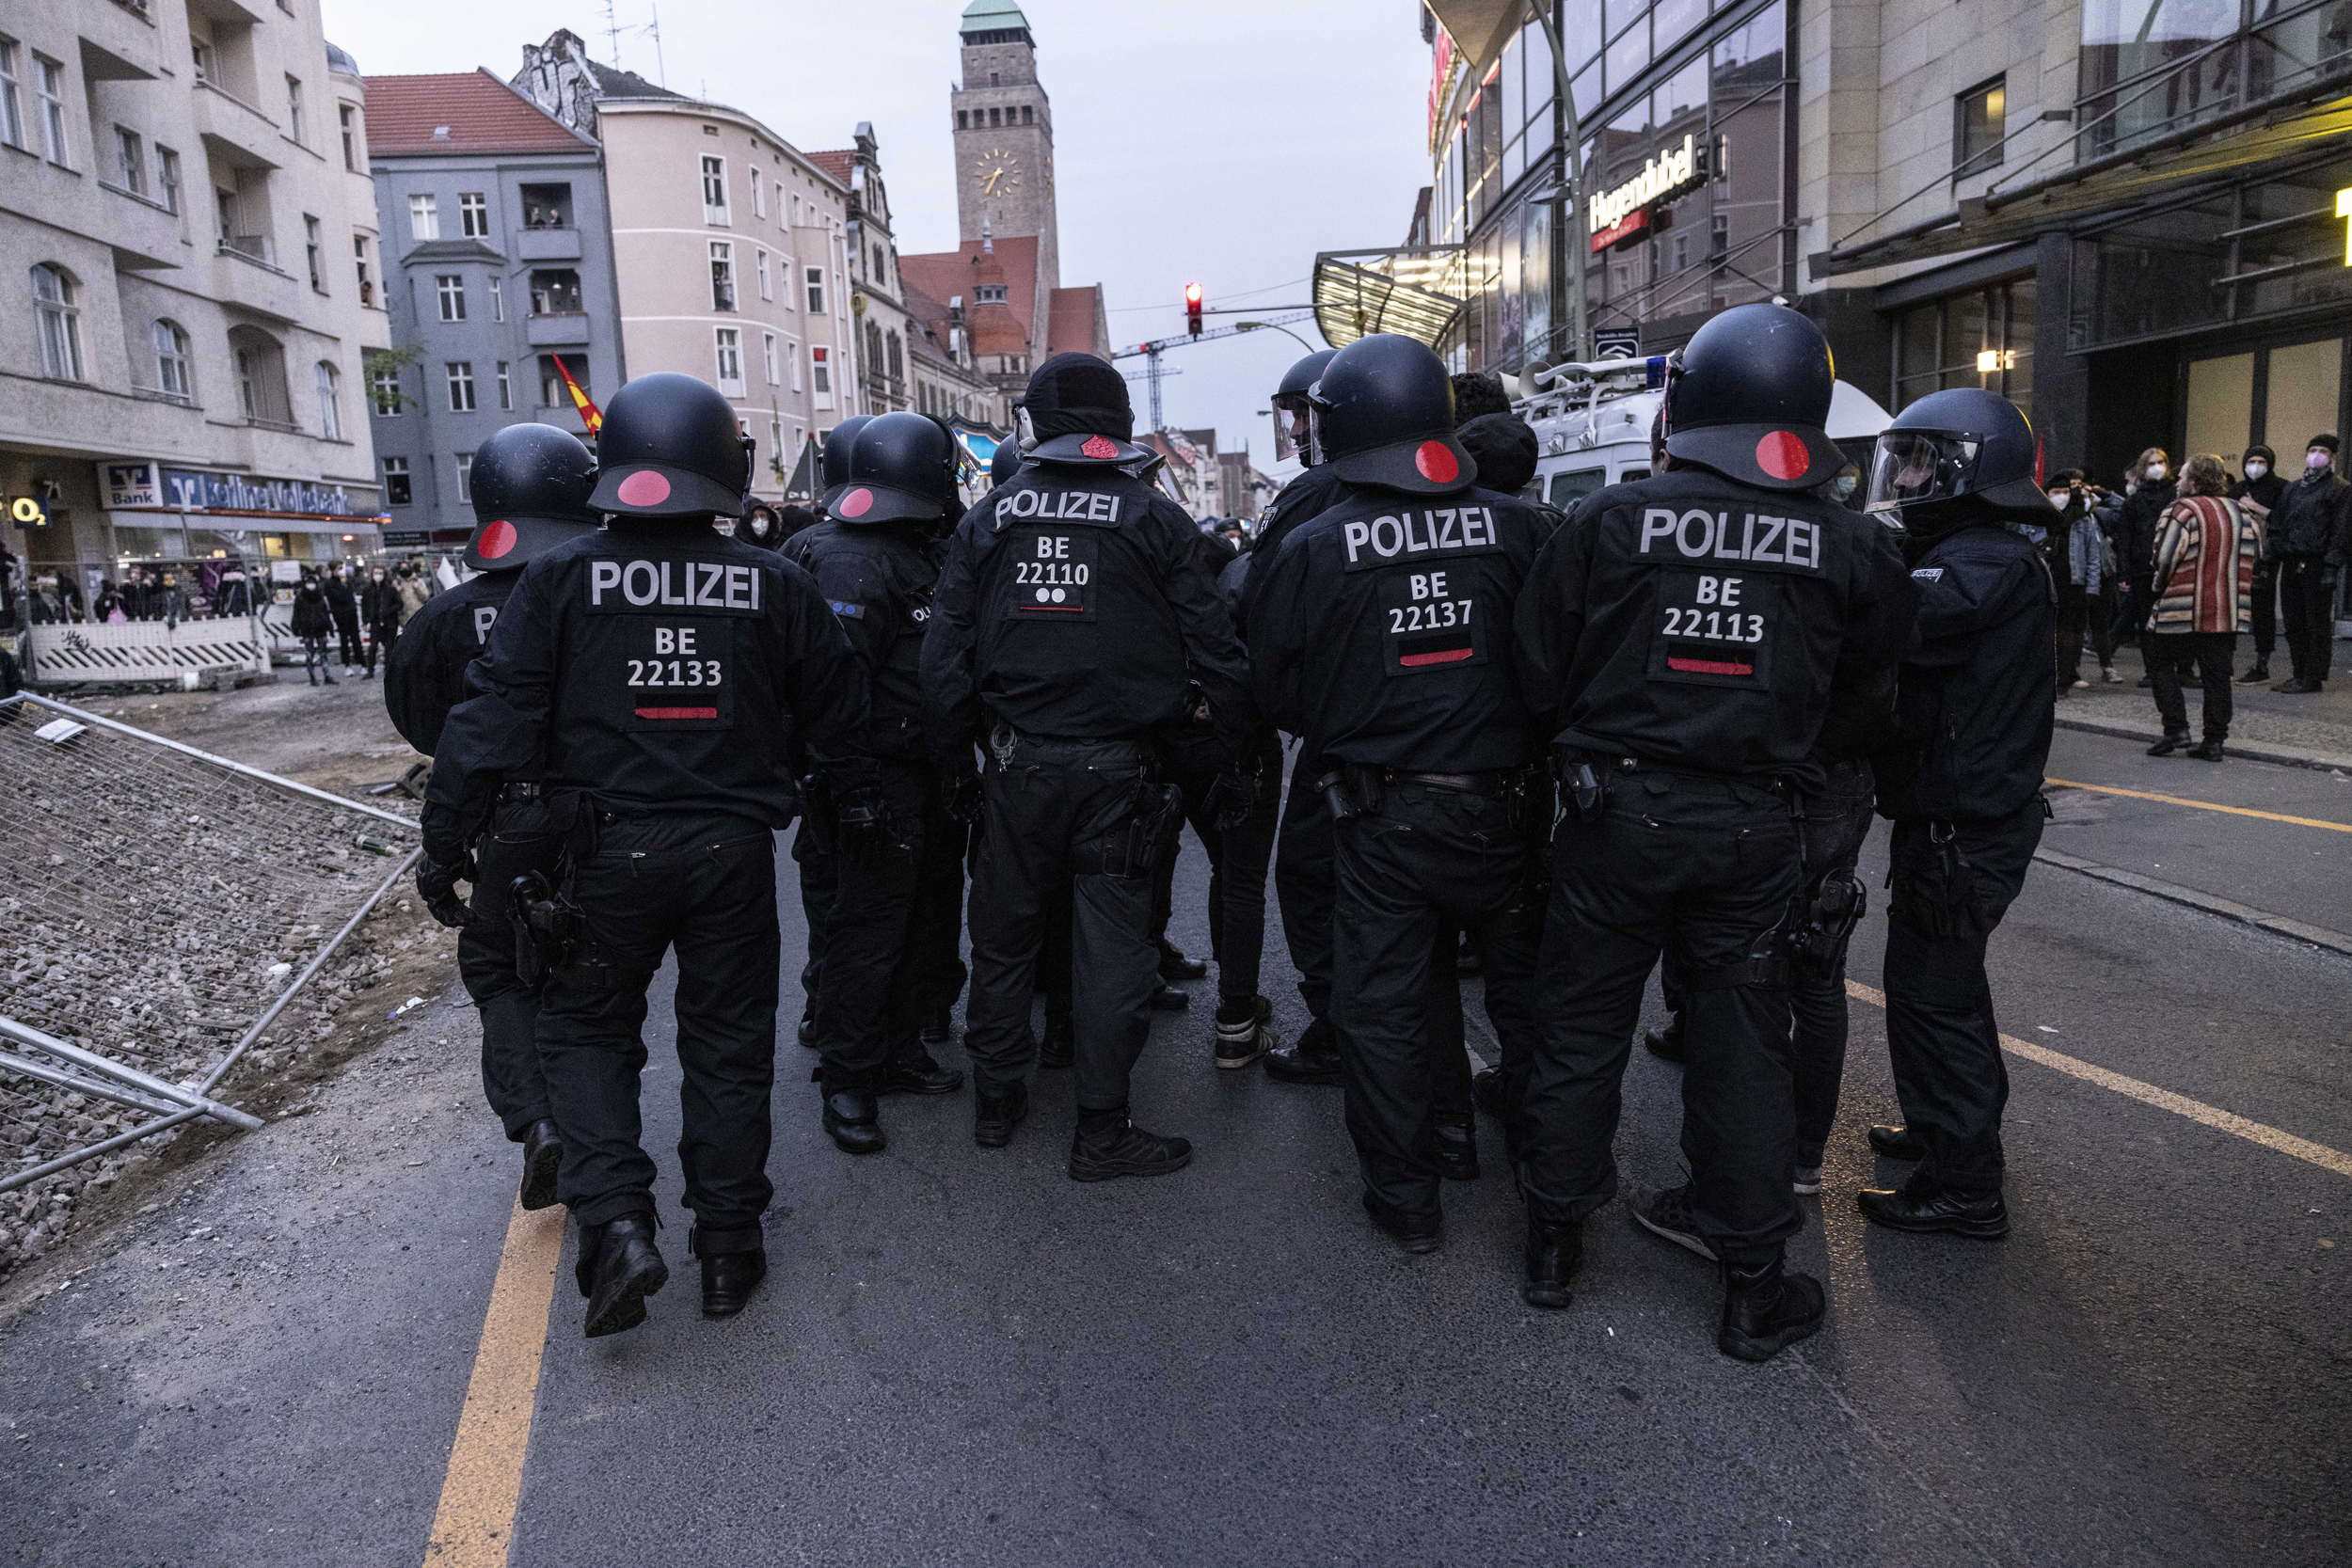 210503-germany-police-al-0951_d8321a31f9